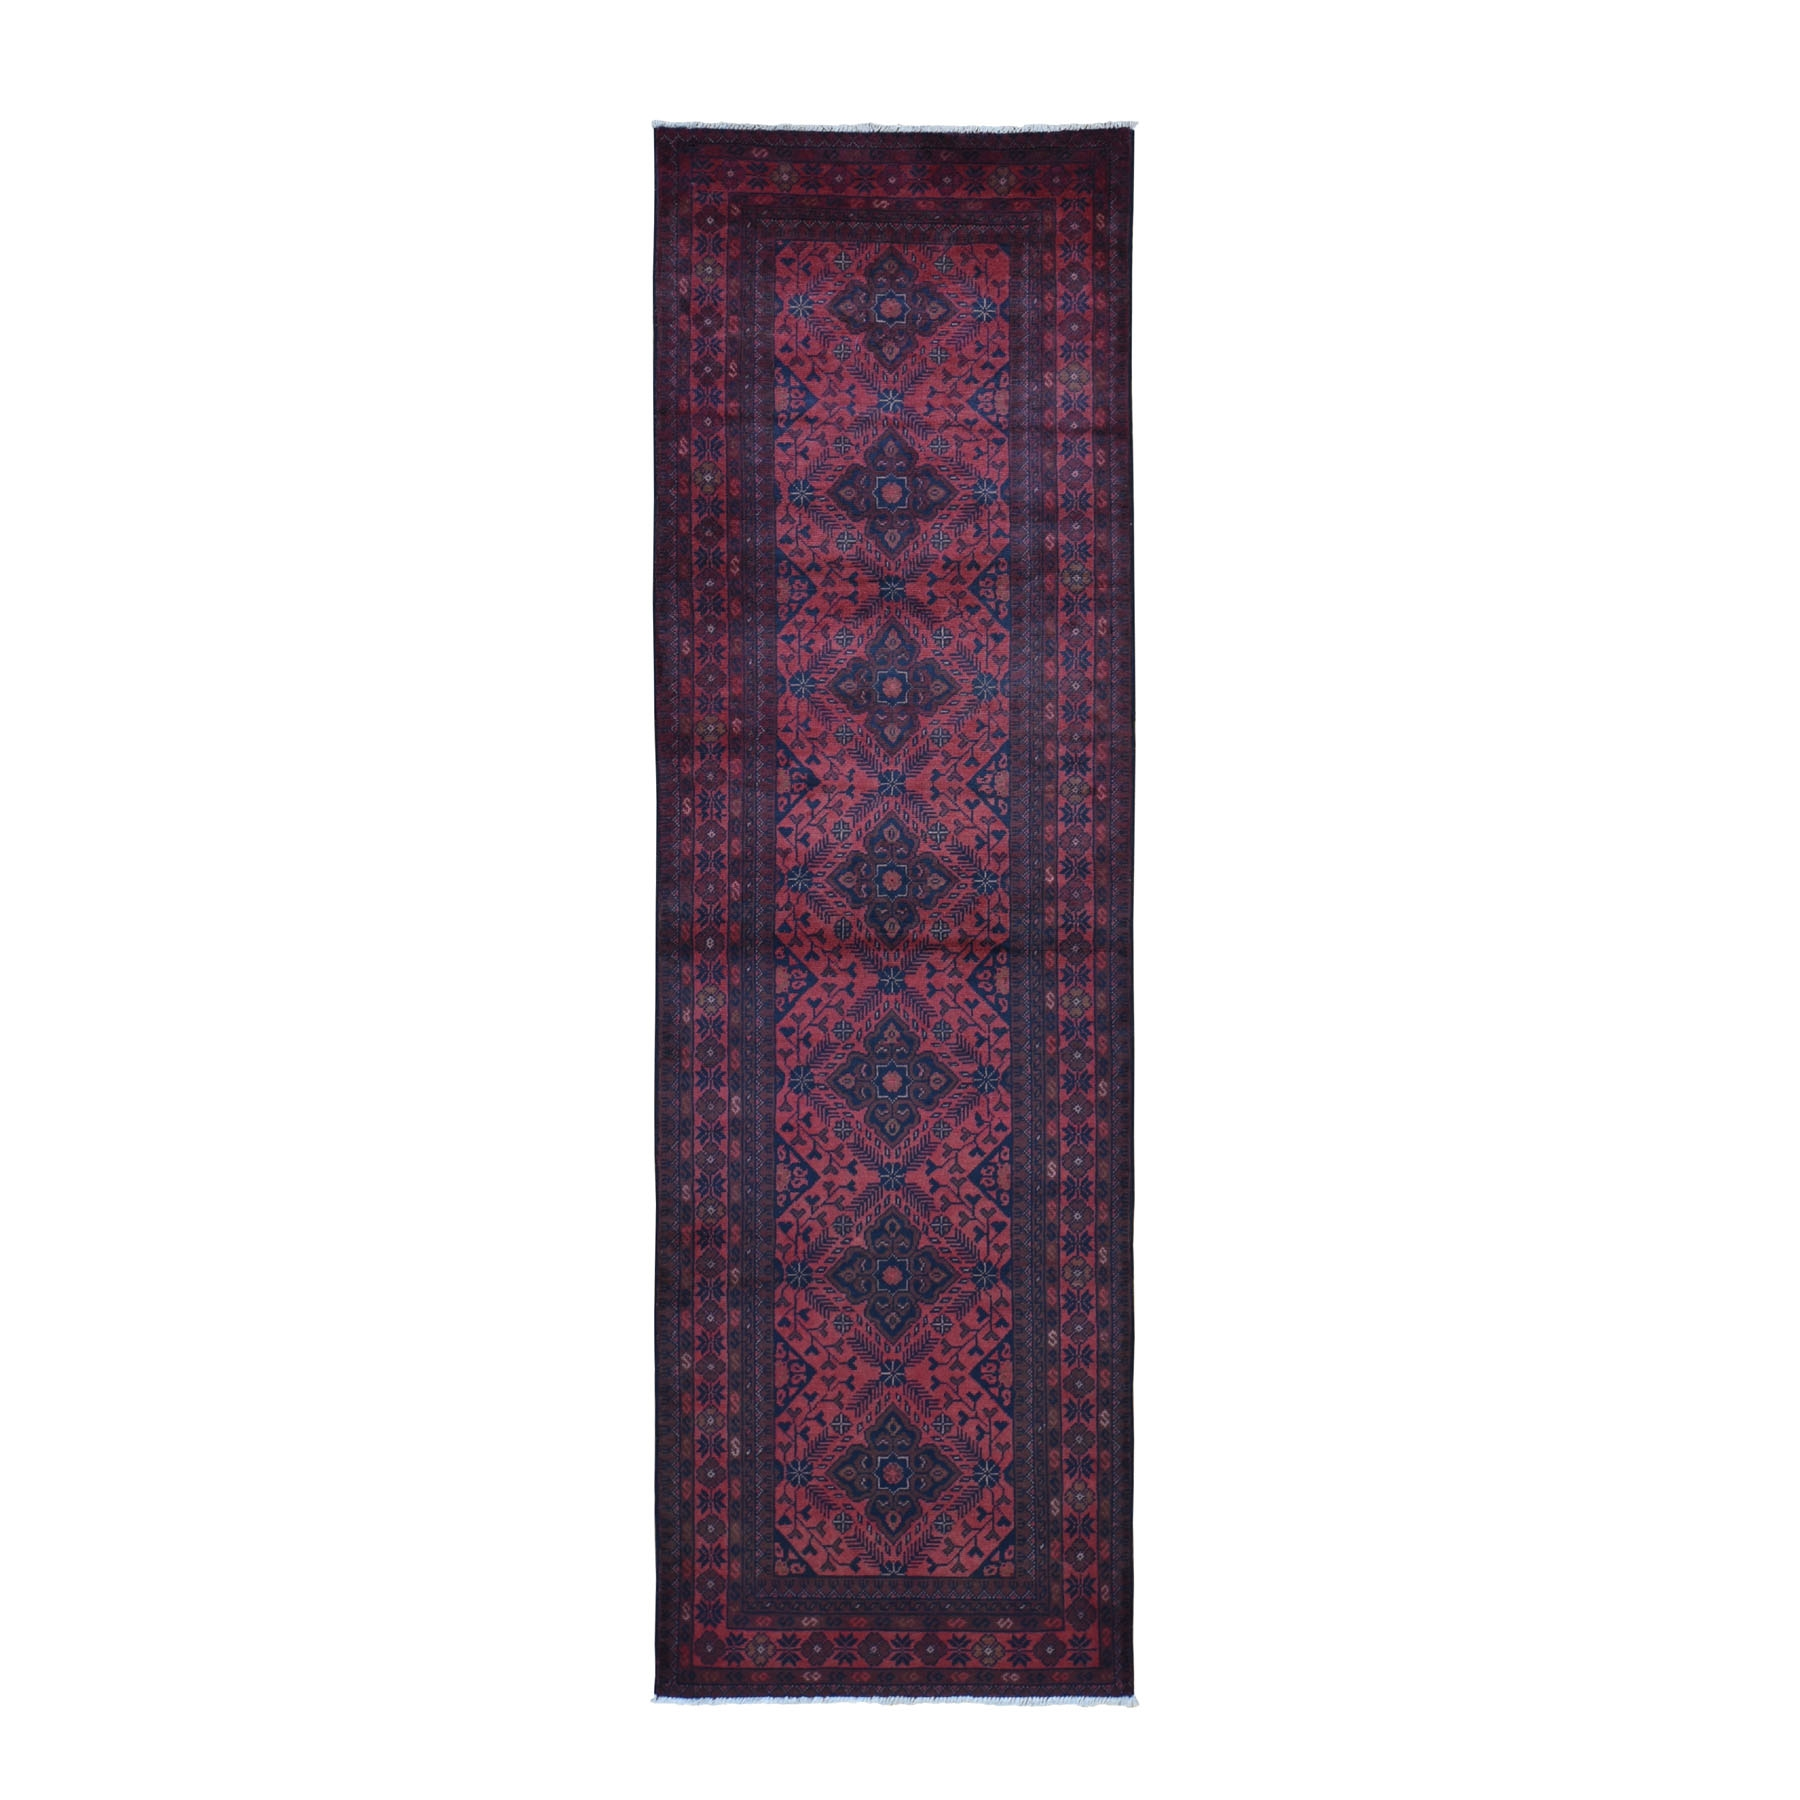 """2'8""""X9'2"""" Deep And Saturated Red Geometric Afghan Andkhoy Runner Pure Wool Hand Knotted Oriental Rug moad97ca"""